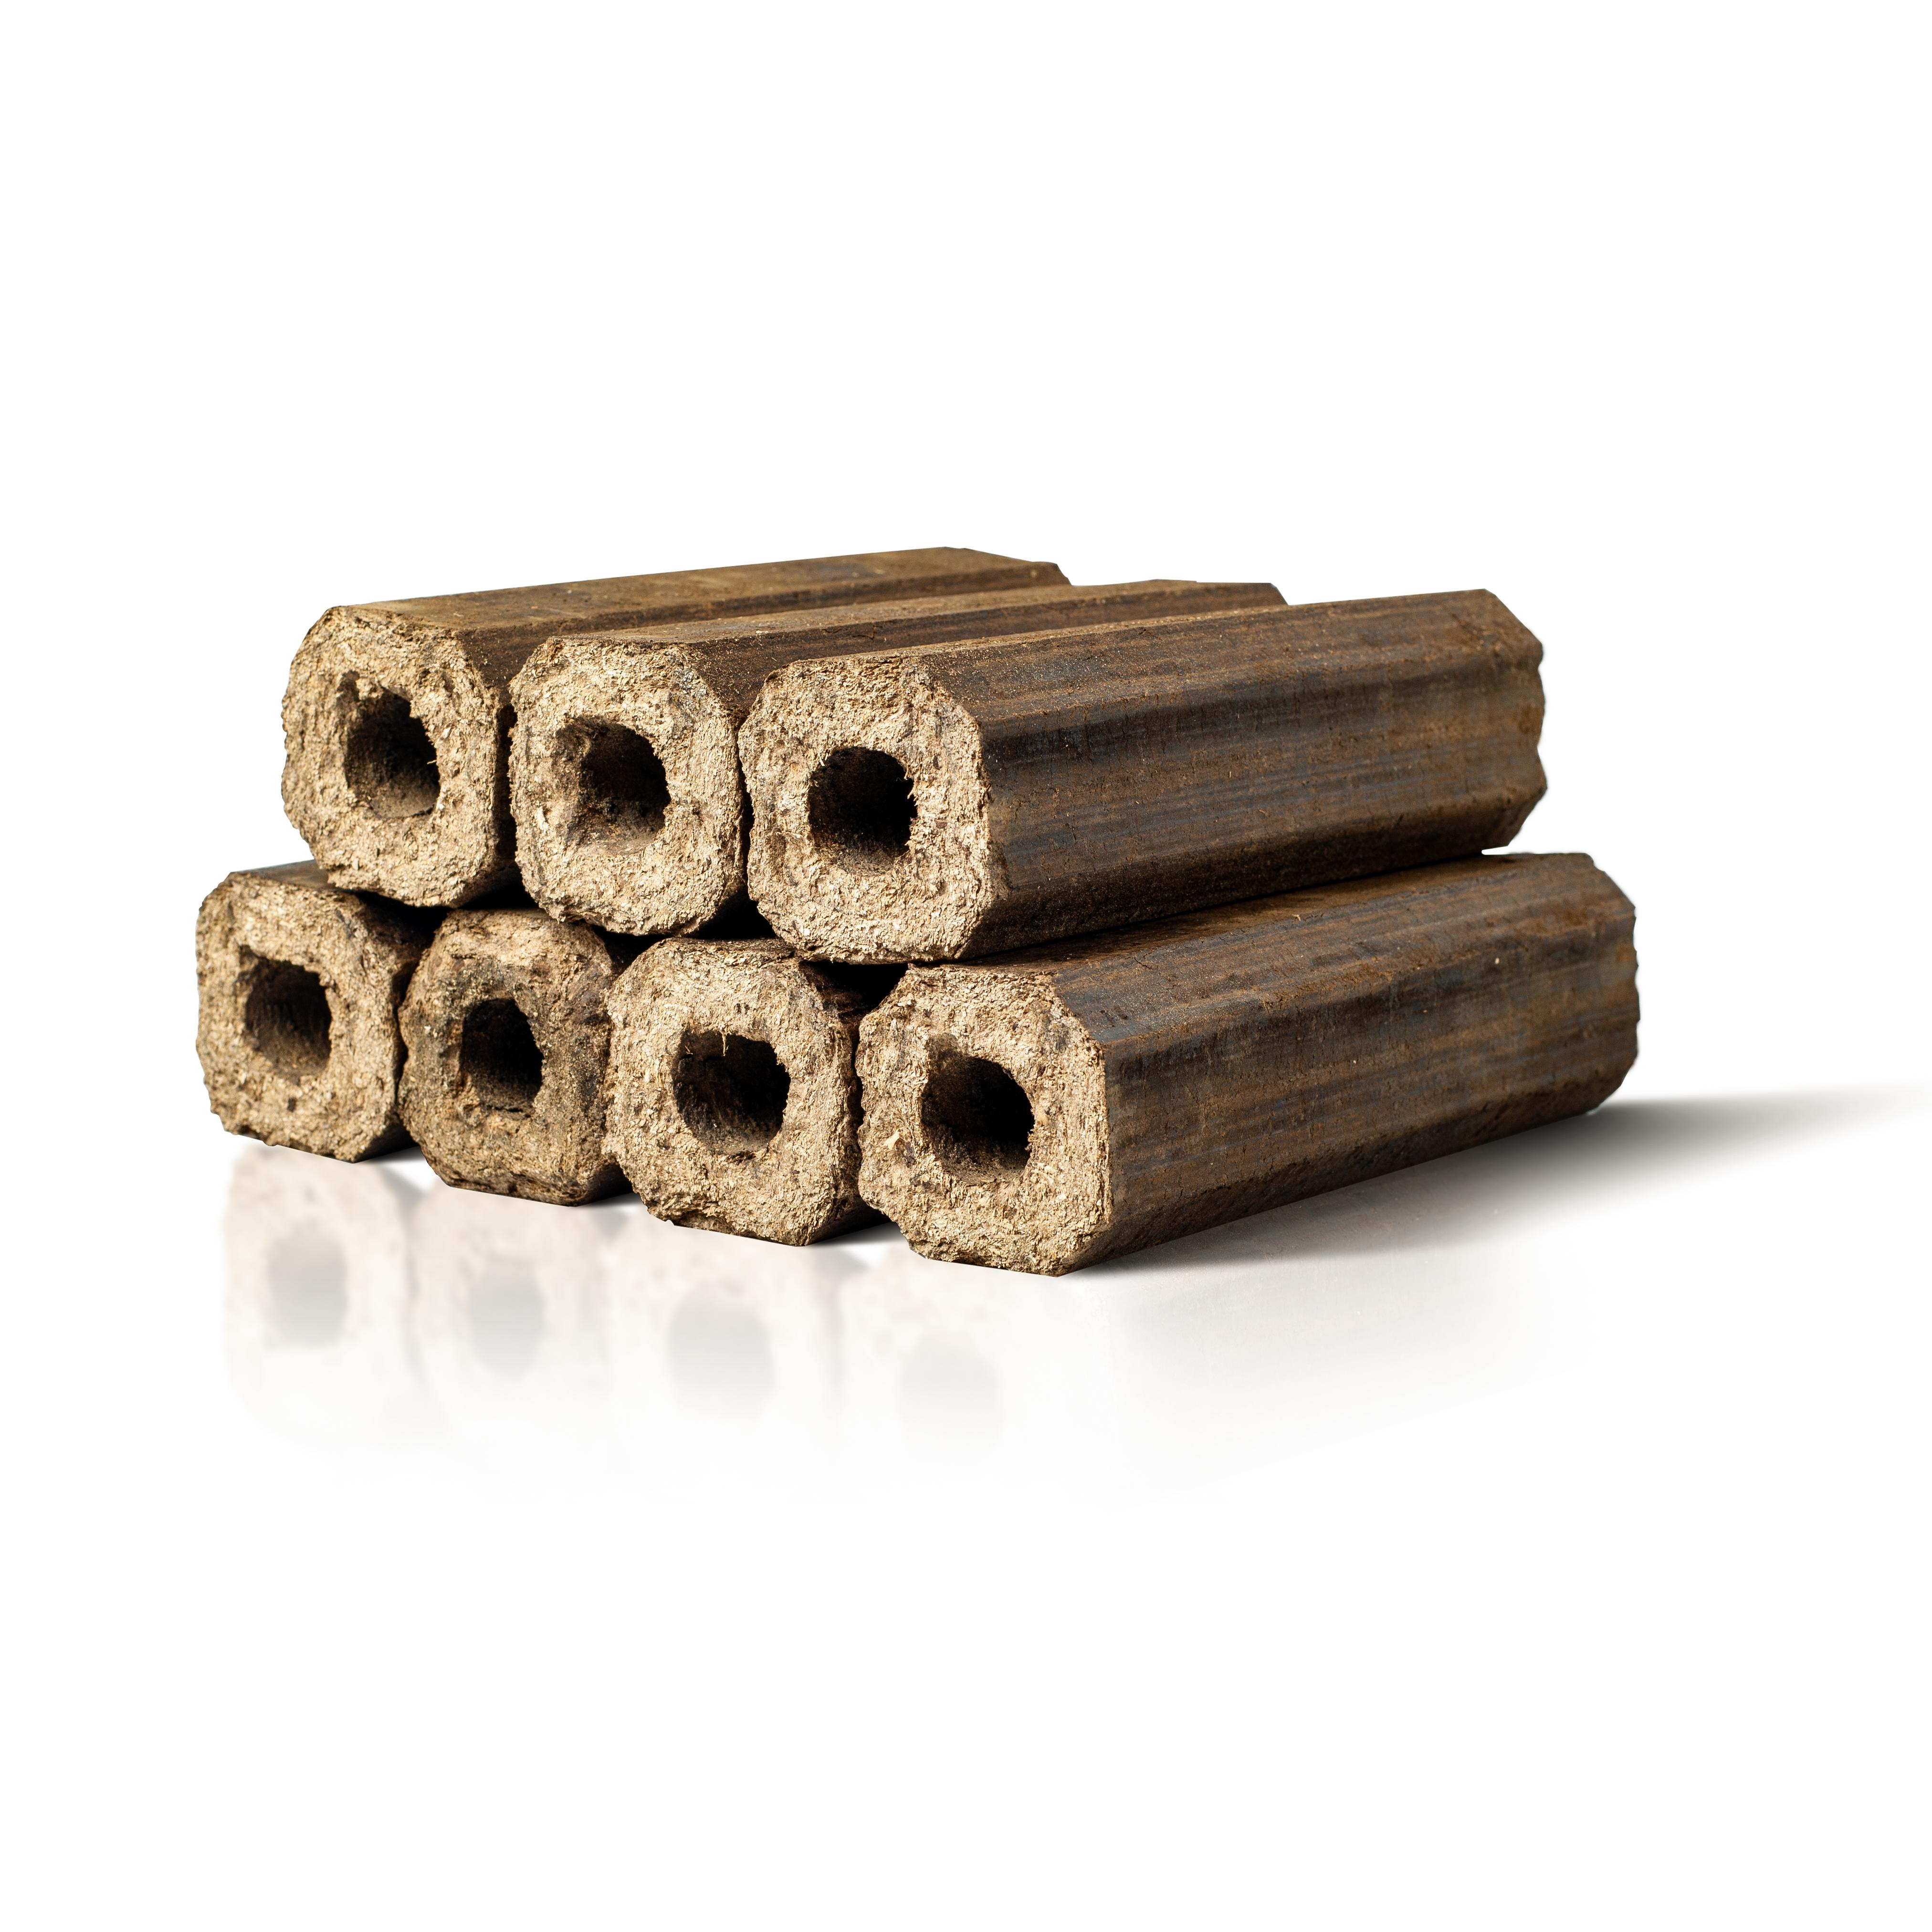 Pini-Kay Wood Briquettes Heat Logs Close Up